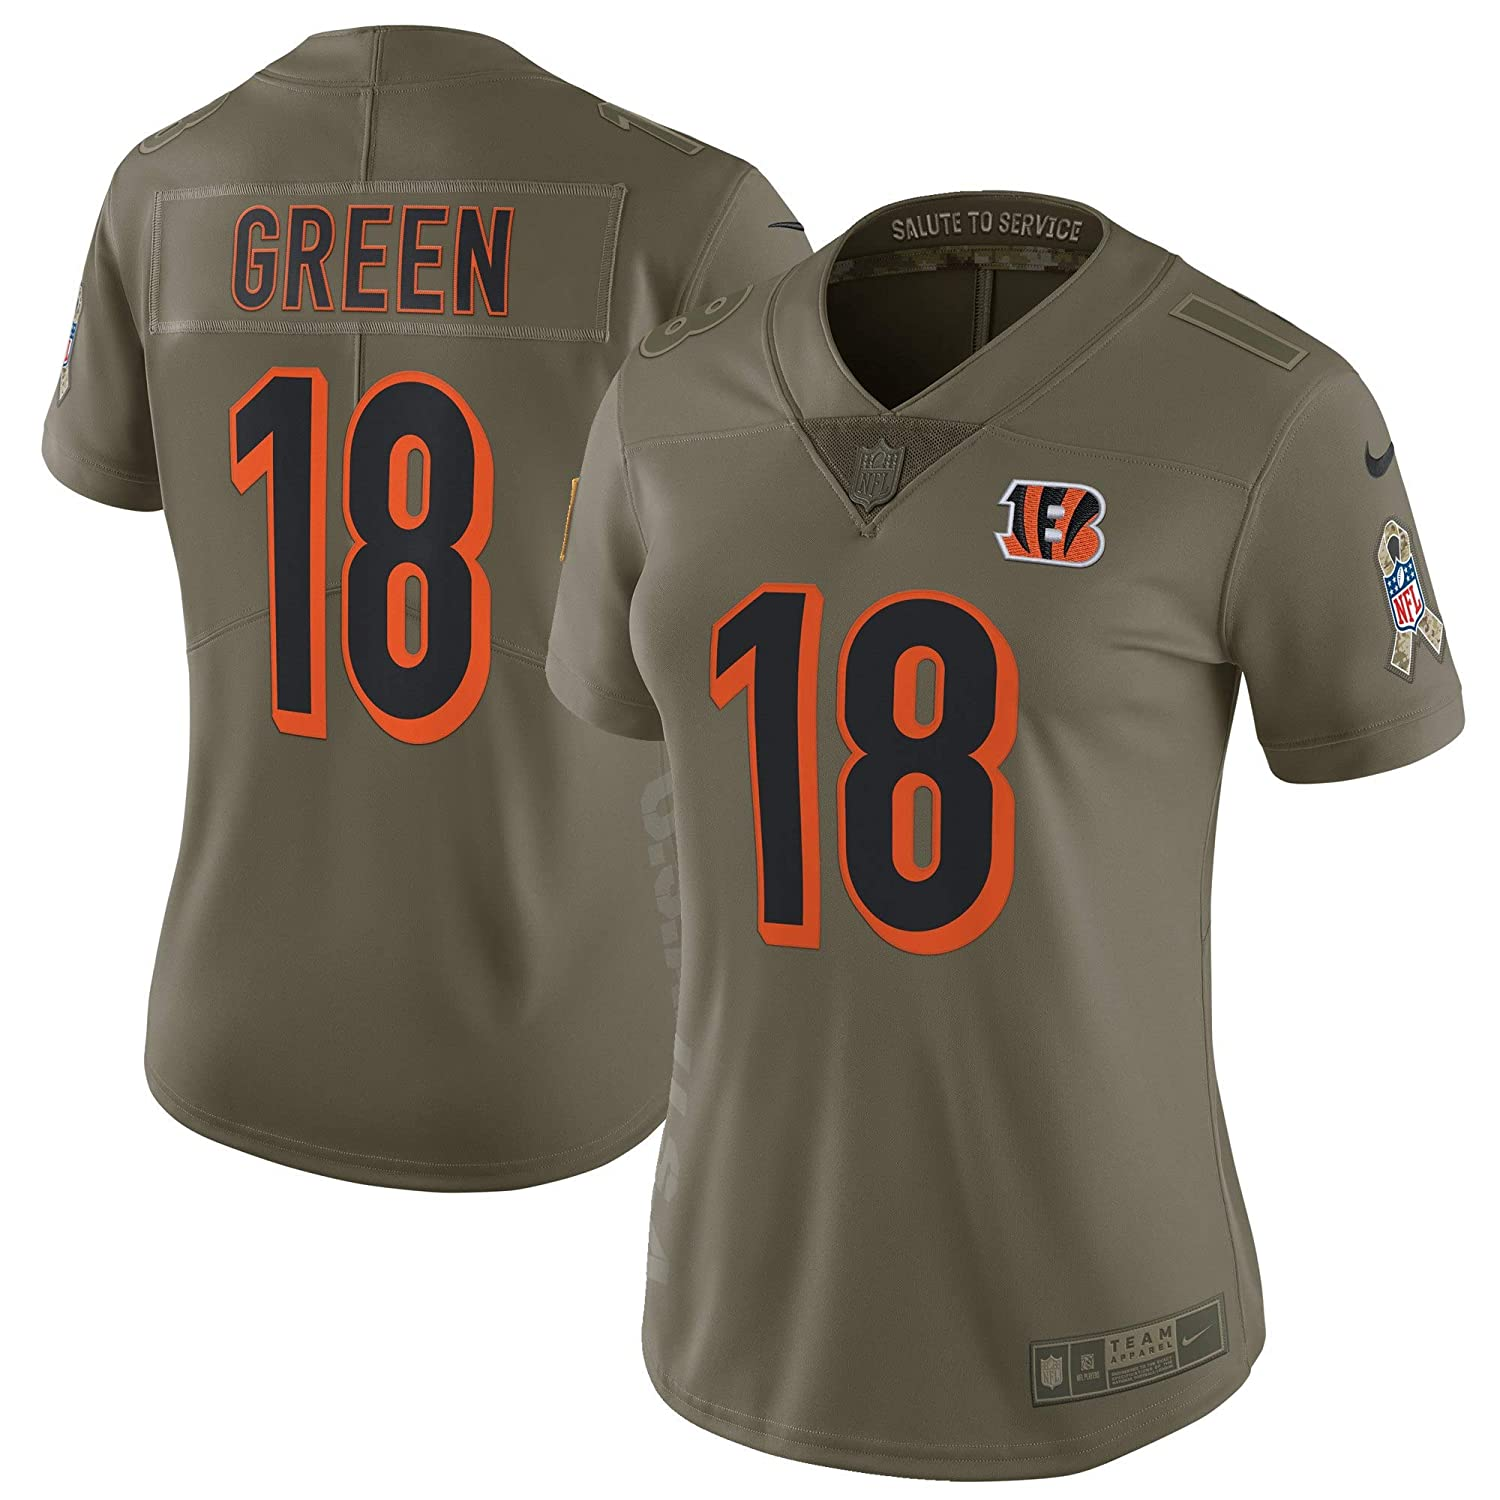 c25acf40823 Amazon.com: Women's Medium AJ Green Cincinnati Bengals Salute To Service  Nike Limited Jersey - Olive: Clothing